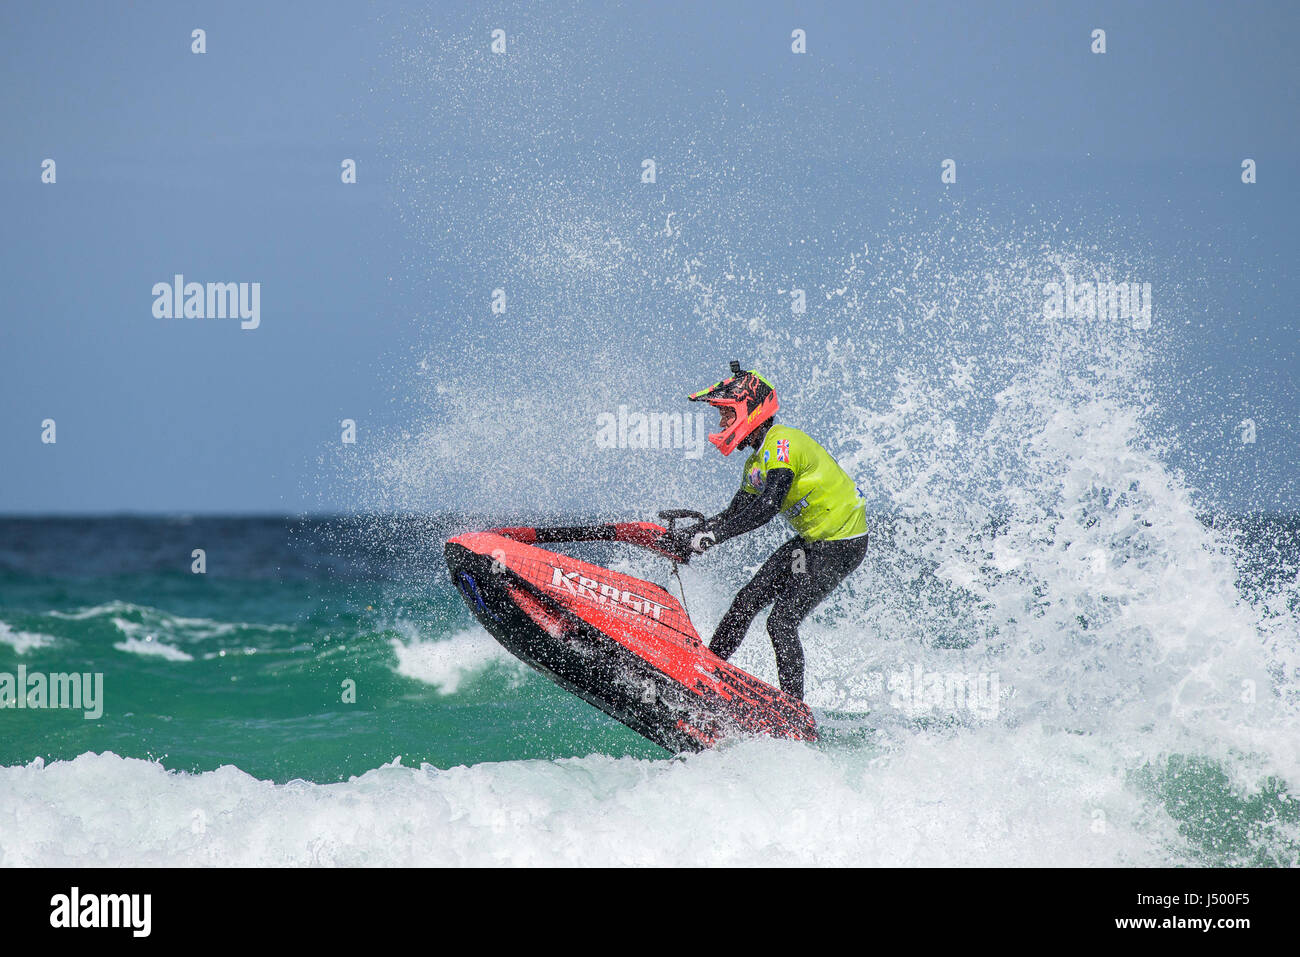 A jetski rider at the IFWA Championships Jetski Jet ski Spectacular action  IFWA Championships Battle of the pilots - Stock Image